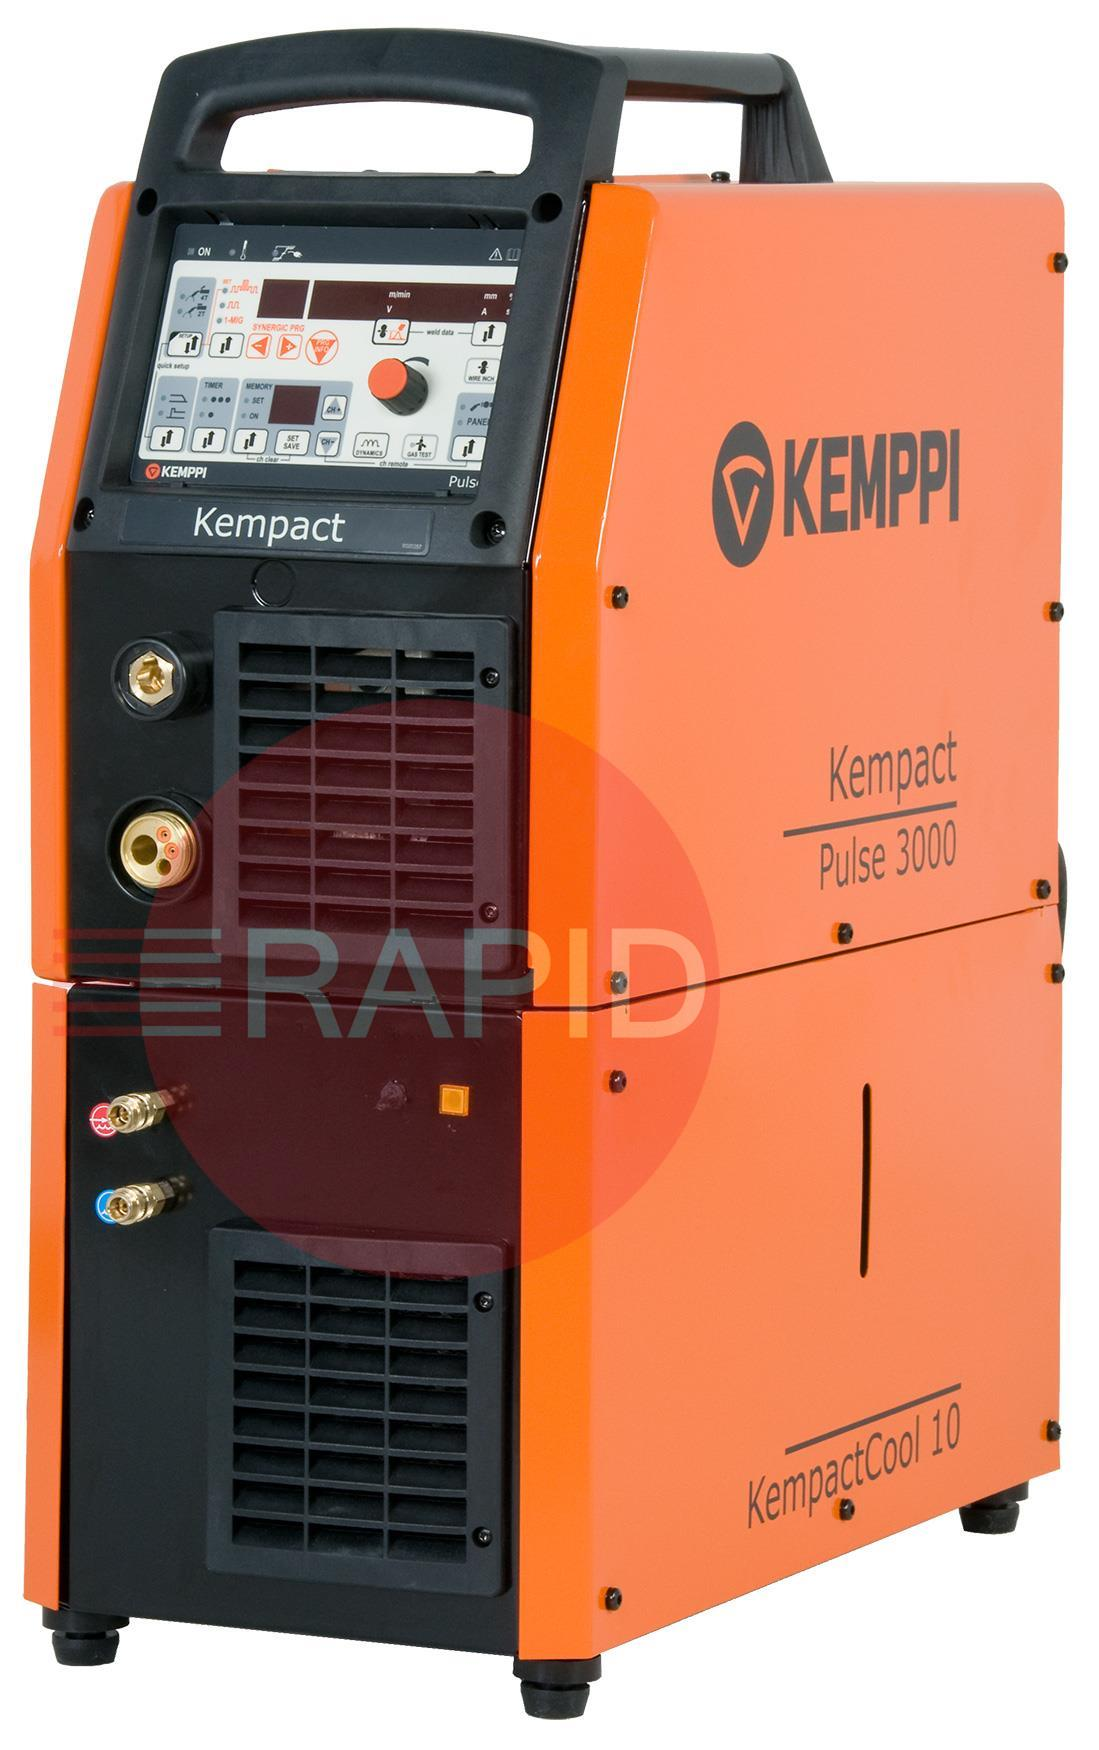 KPACT3000W  Kemppi Kempact Pulse 3000 Water Cooled Mig Welder. Comes with PMT 30W 3M Torch, Earth & Gas Hose. 400v CE